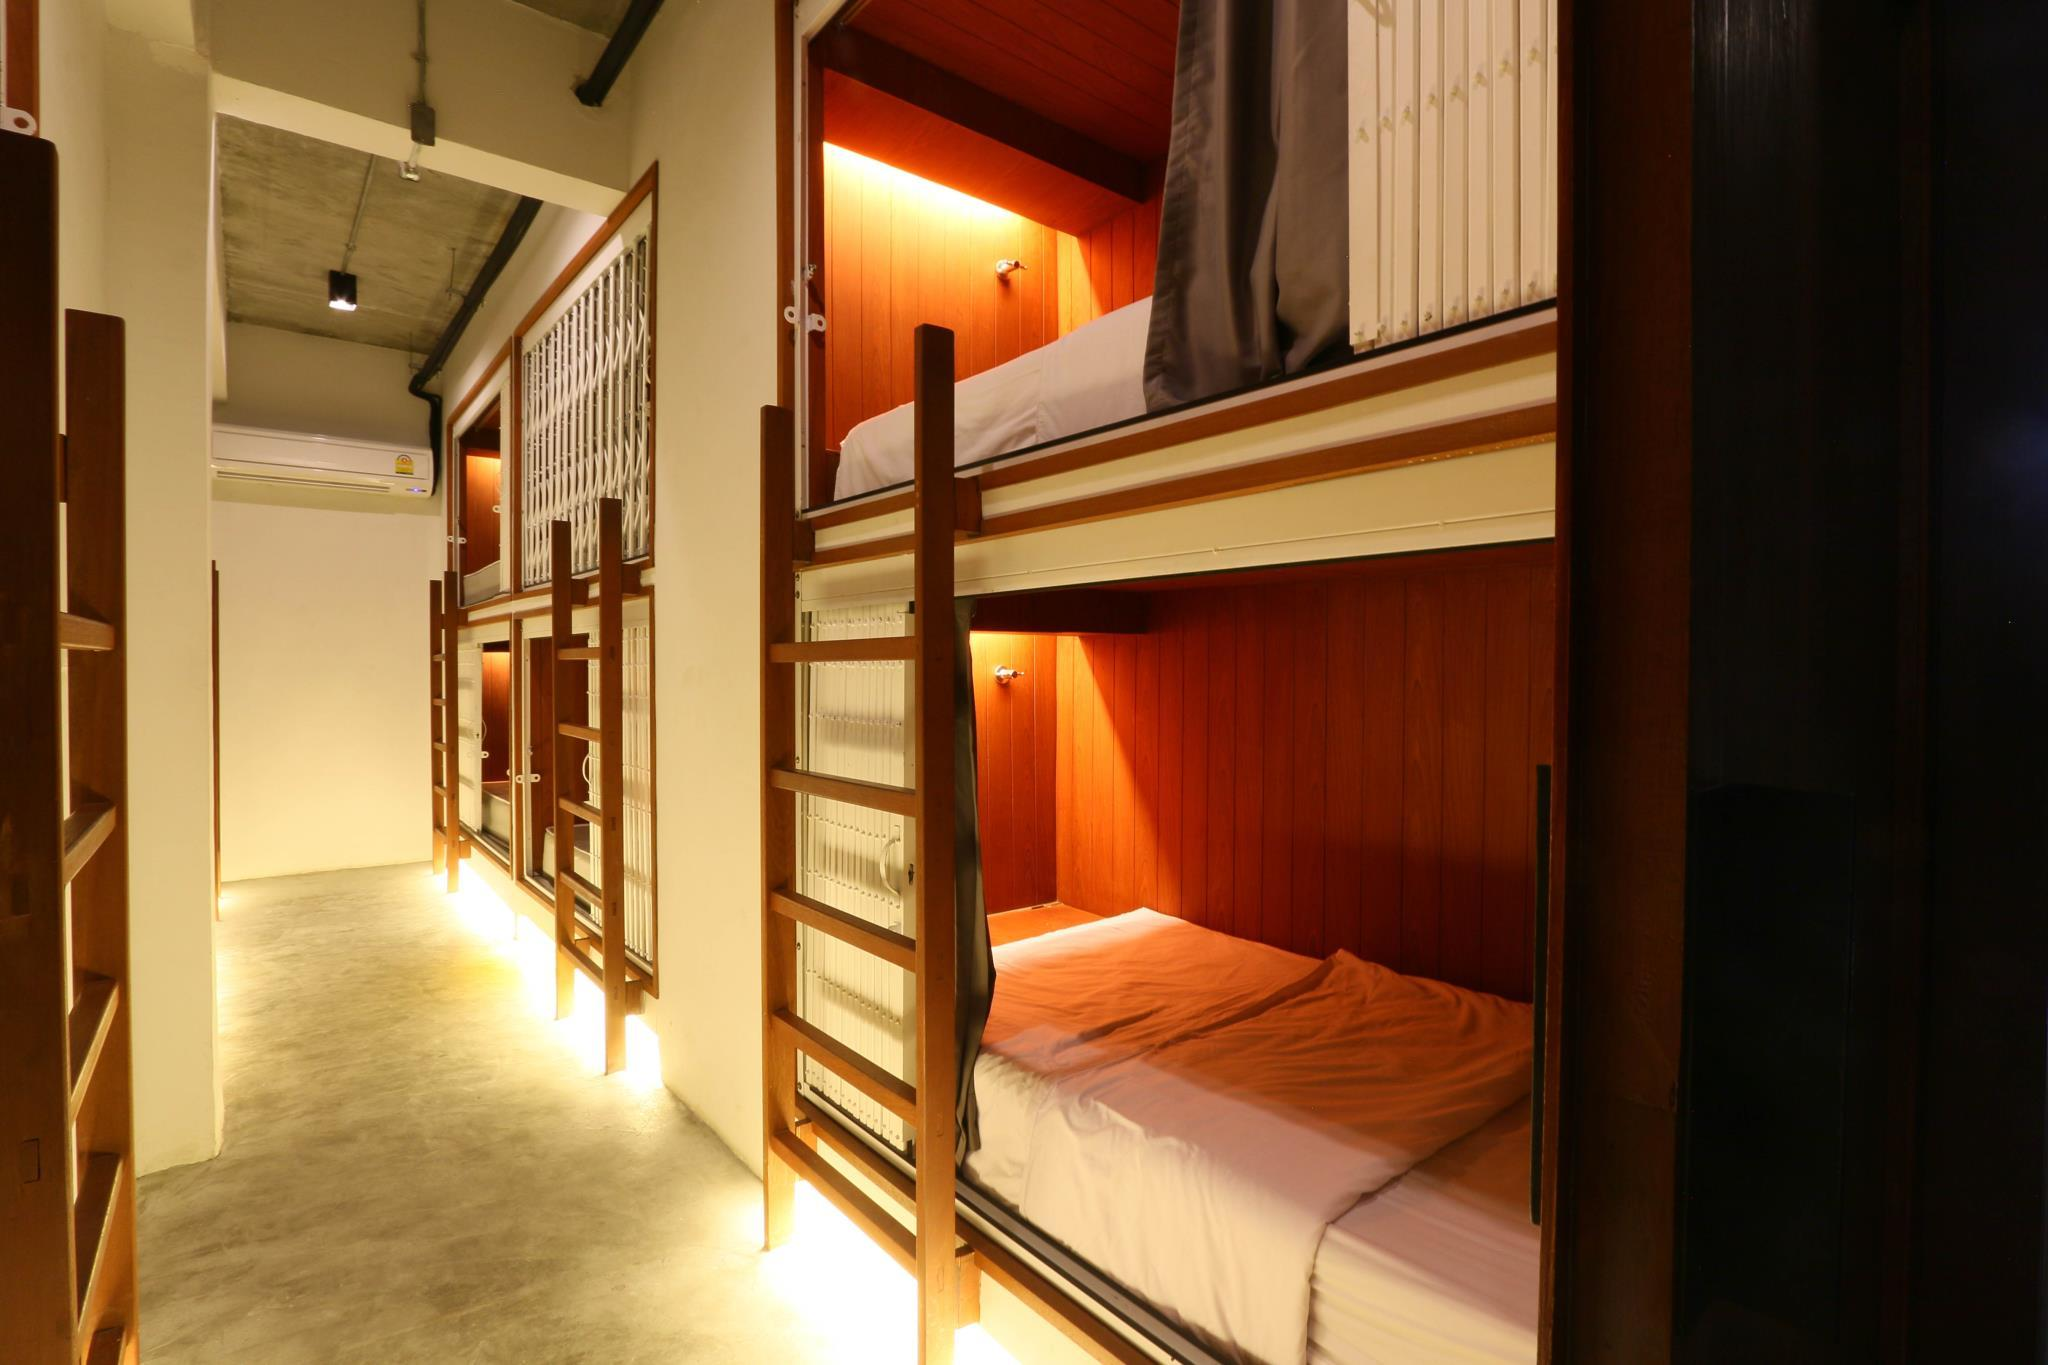 8-Bed Mixed Dormitory (Price Per Bed)